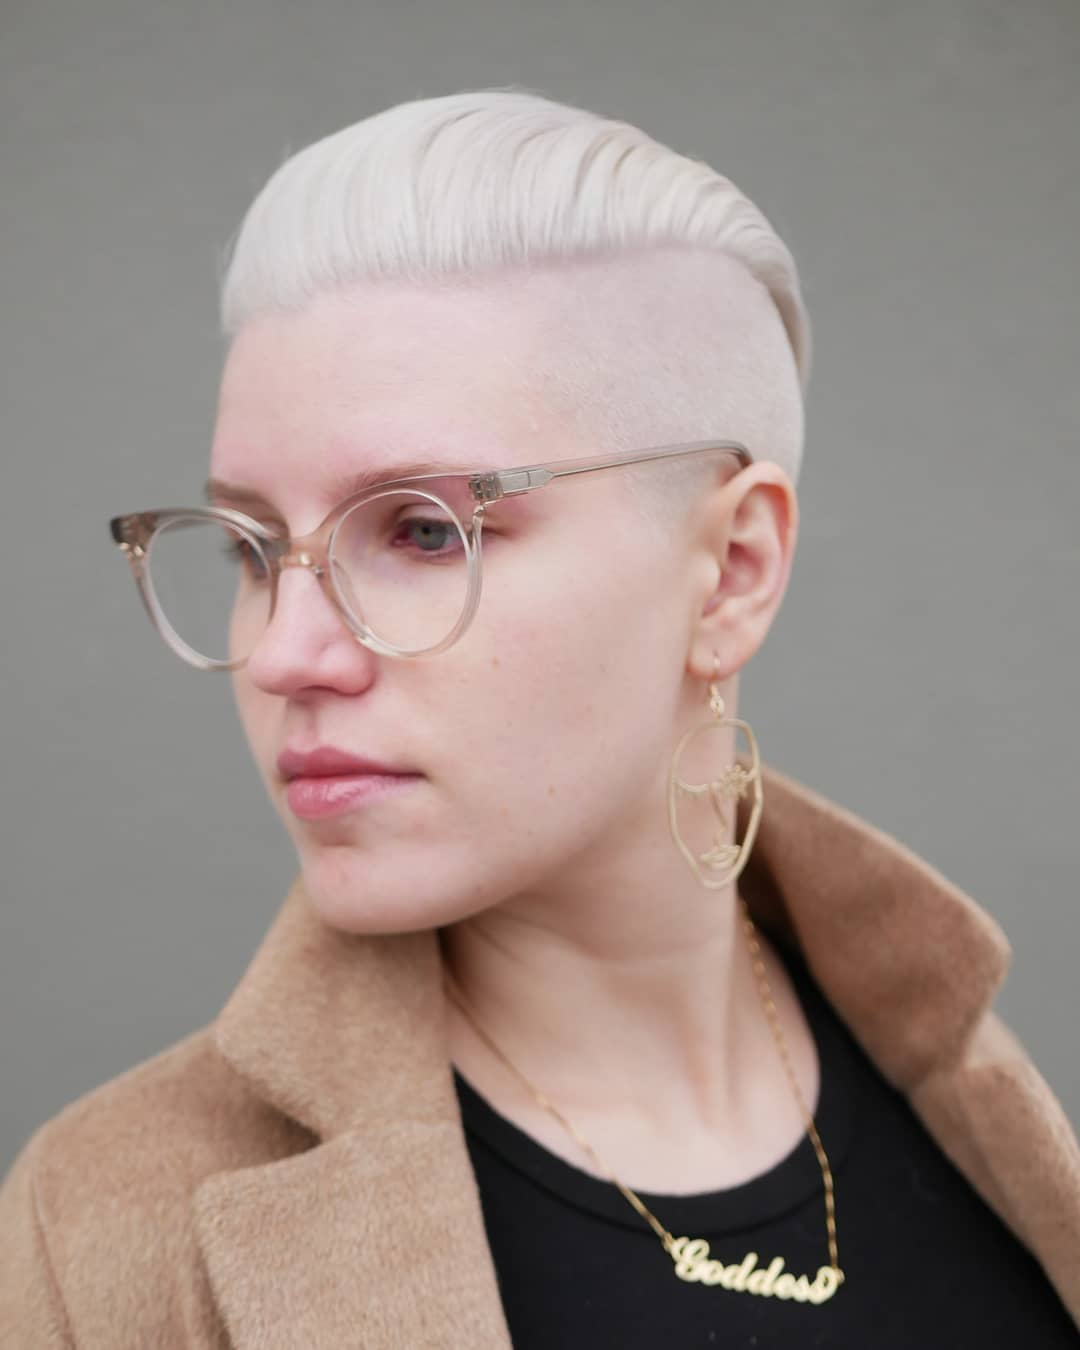 Short Haircut with Glasses and Shaved Sides